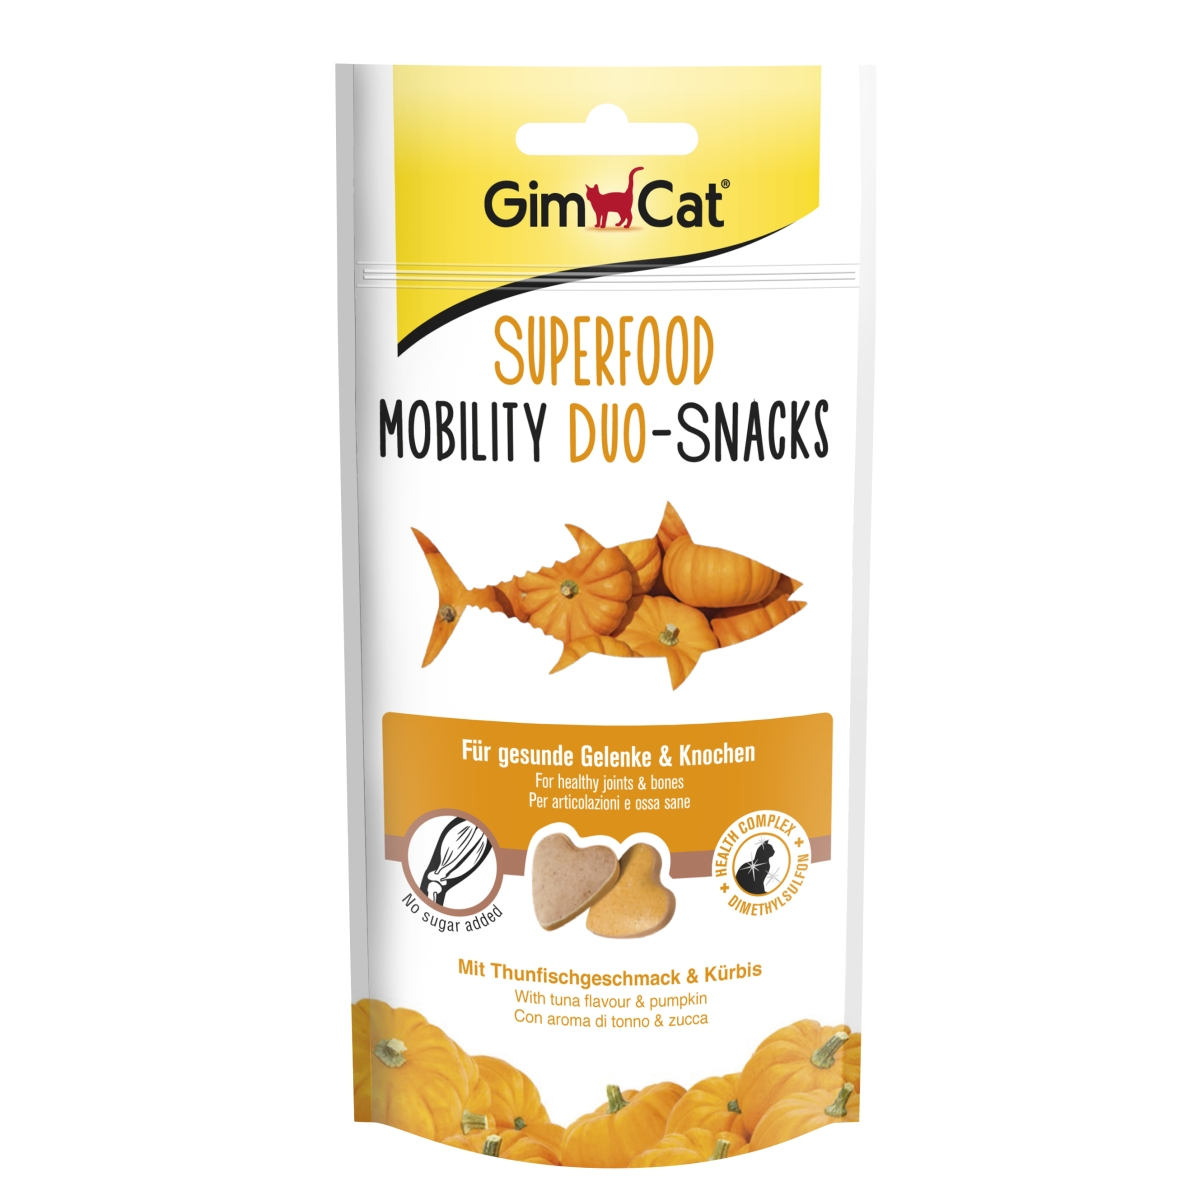 GC SF MOBILITY DUO-SNACKS 40GR J 00002